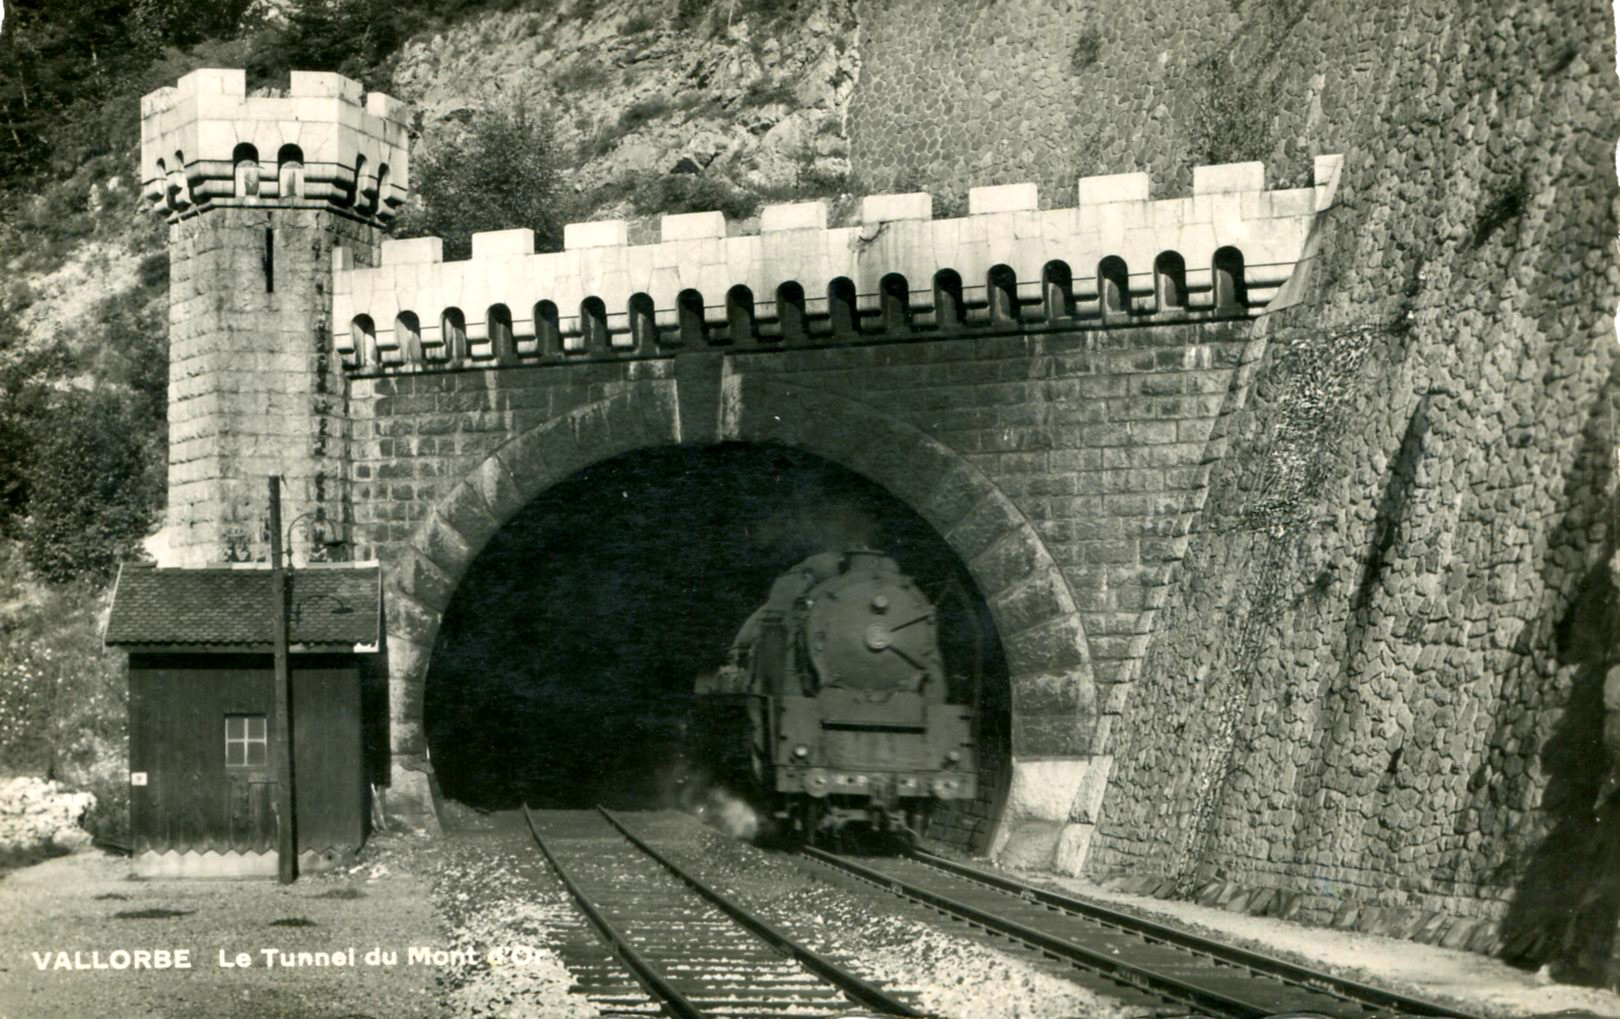 Le tunnel du Mont-d'Or